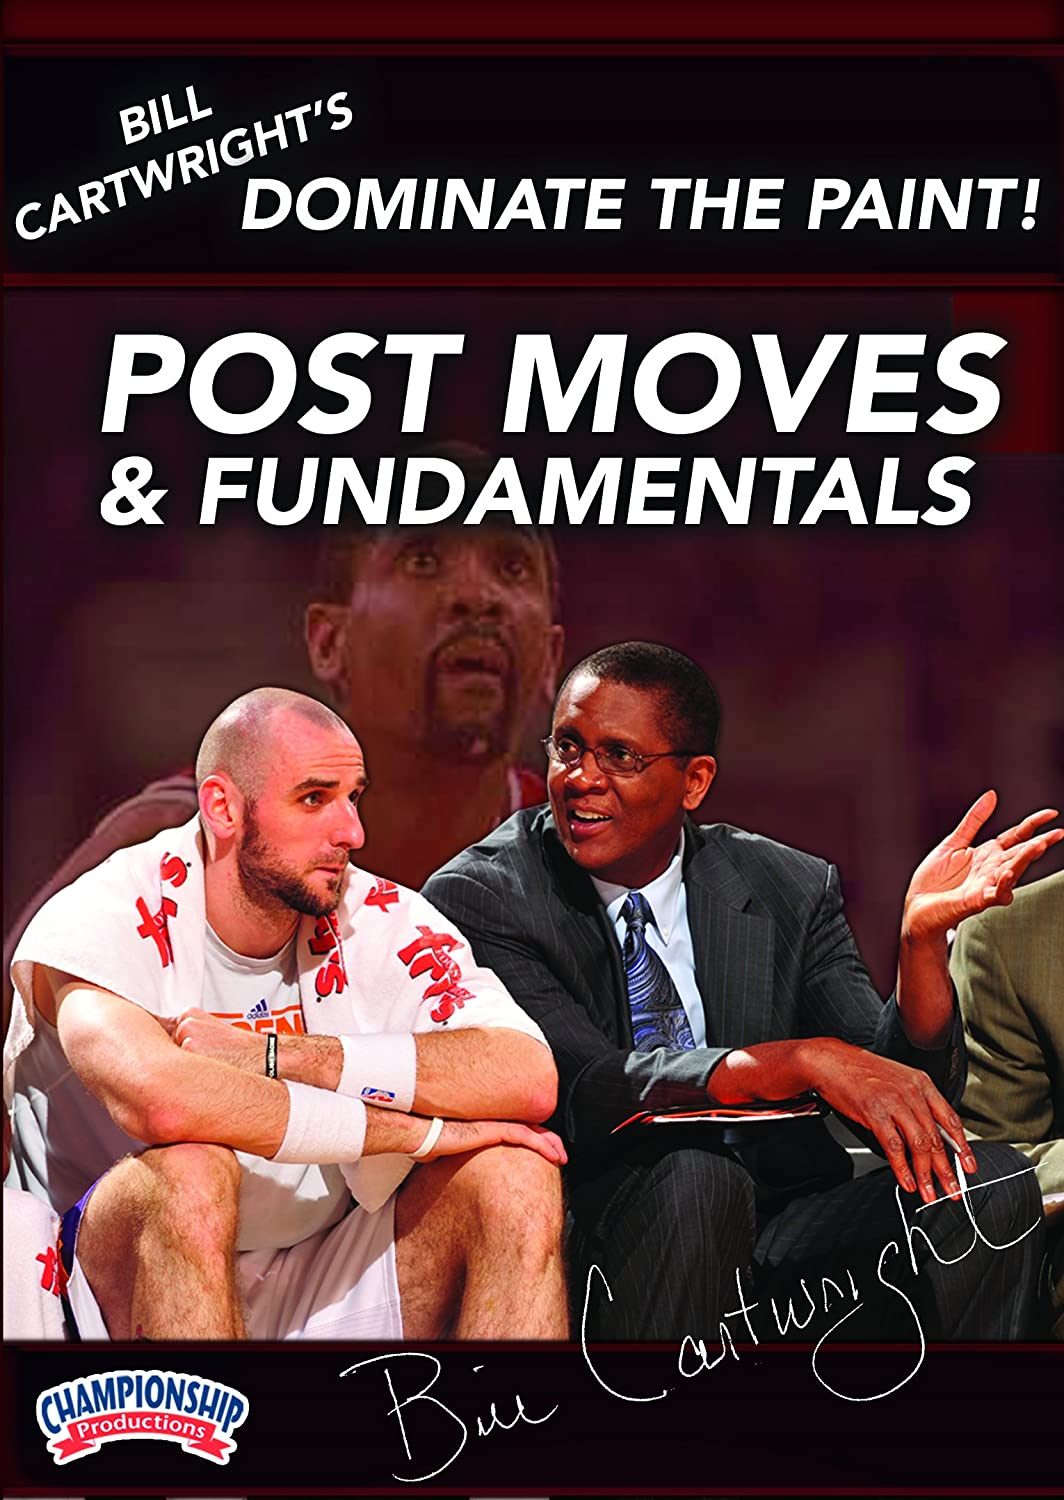 Bill Cartwright's Dominate the Paint Moves and Rare Post Fundamental It is very popular